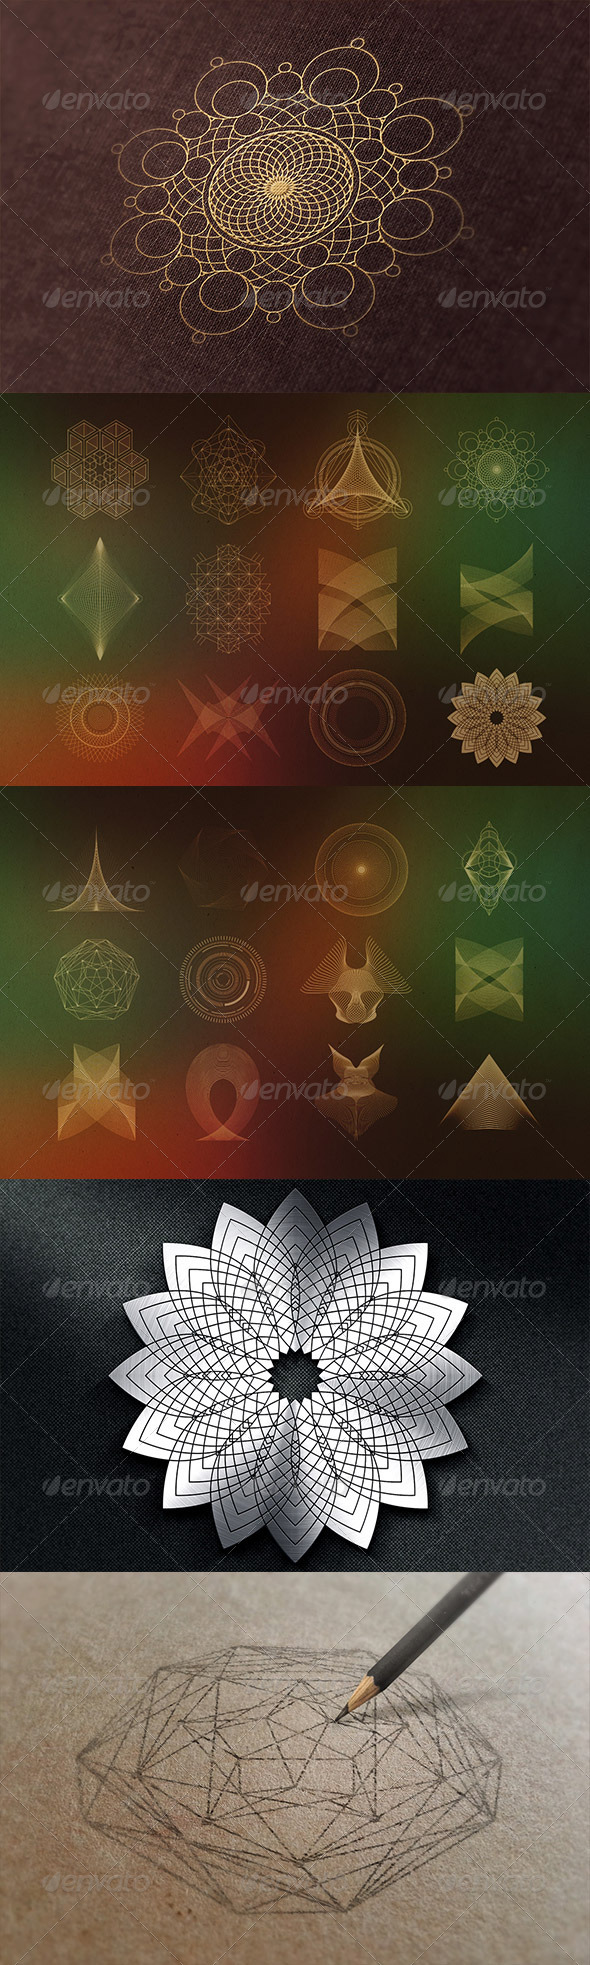 GraphicRiver 24 Geometric Shapes Lines v.2 8364395